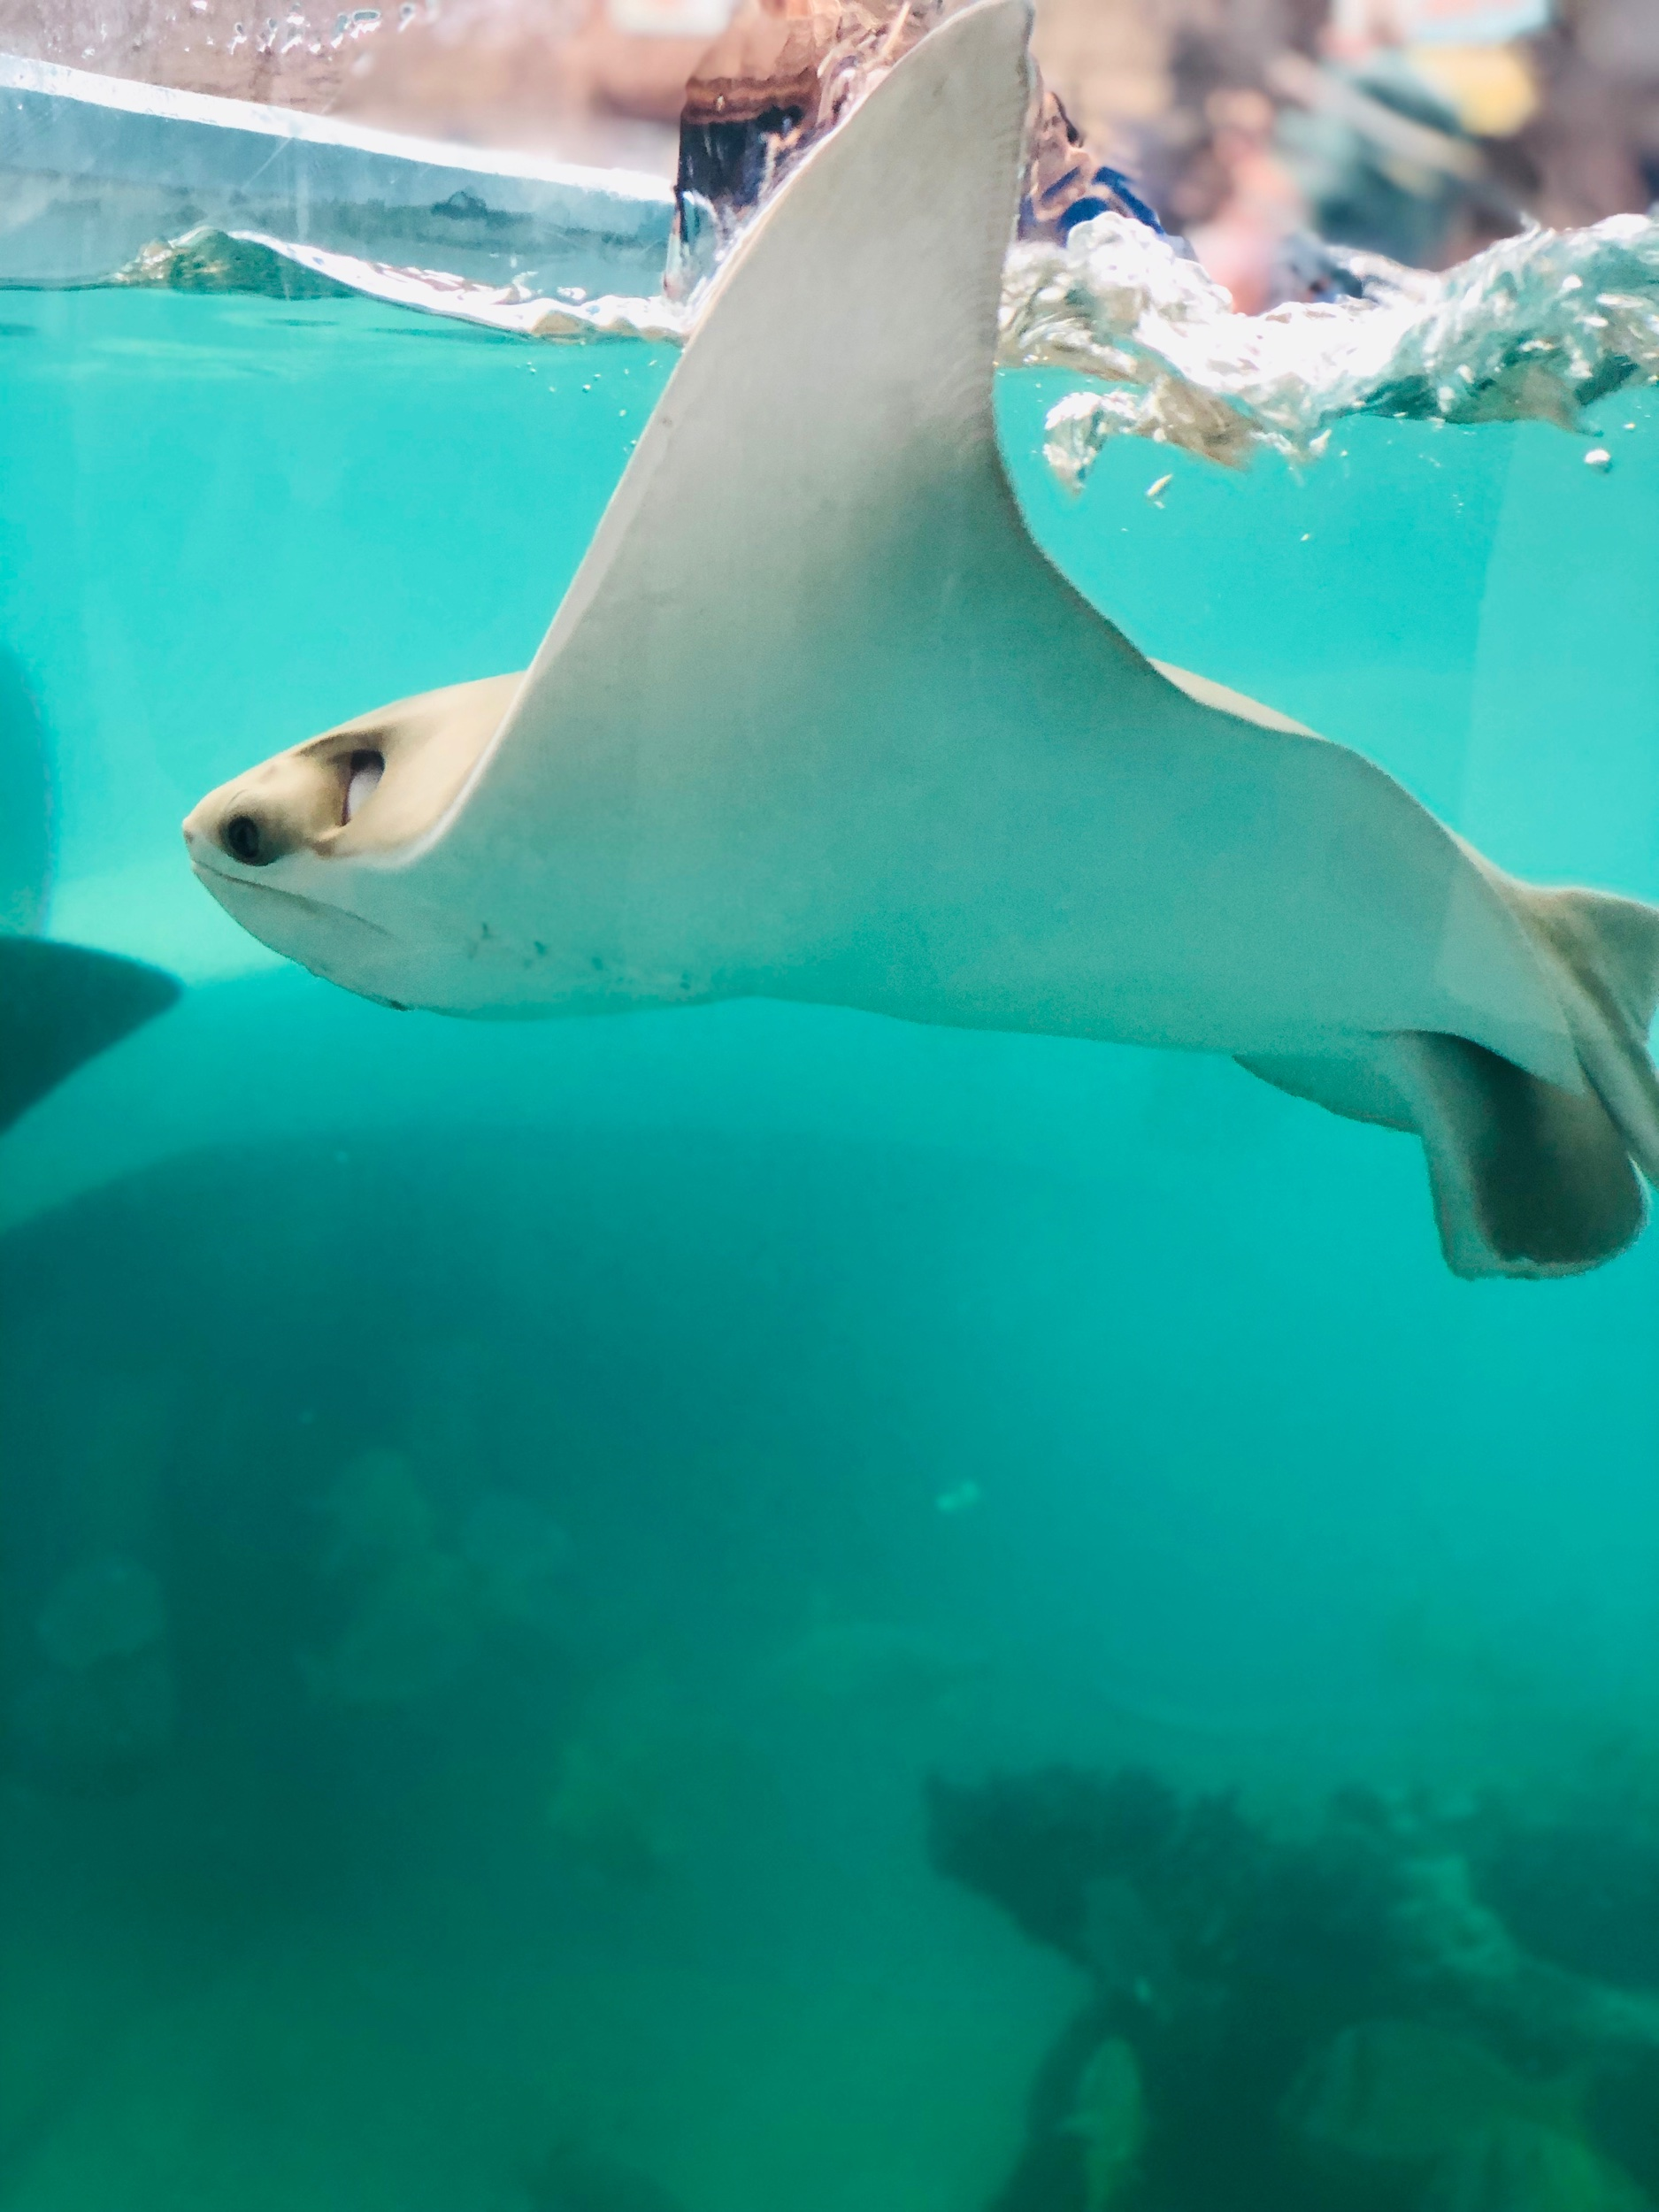 - The stingrays were really majestic to watch